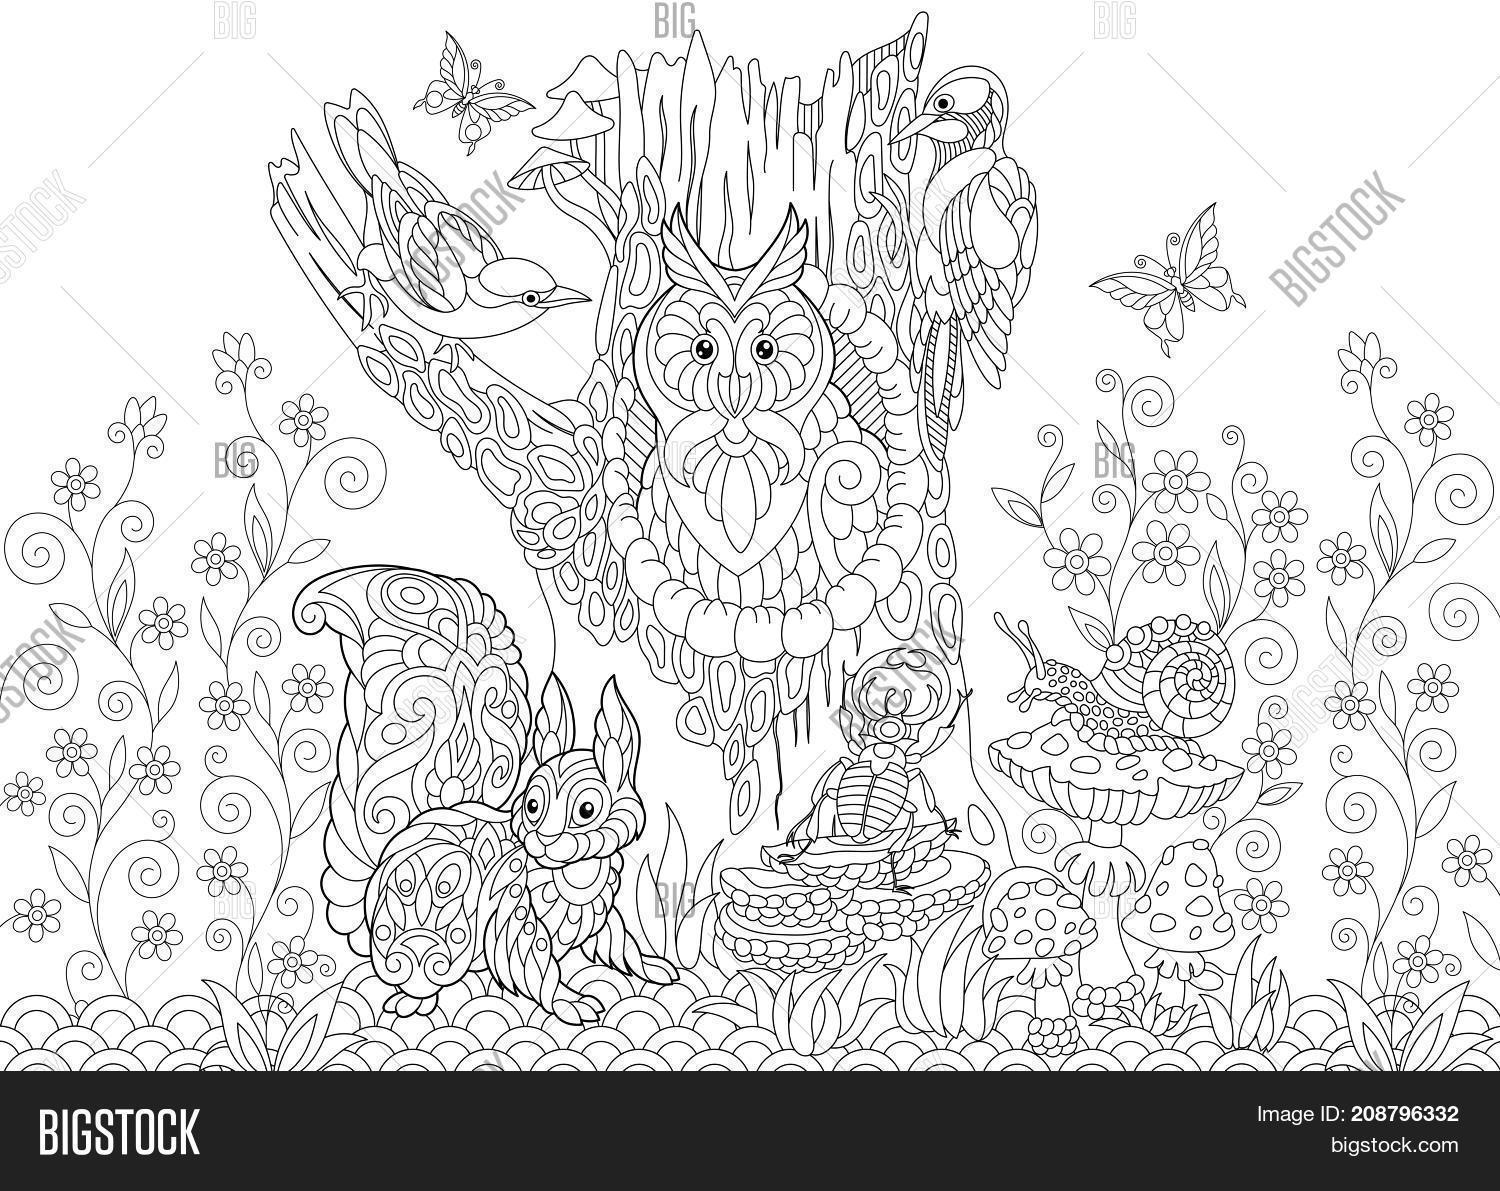 Coloring Page Of Forest Animals Owl Cuckoo Bird Woodpecker Squirrel Snail Stag Beetle Butterflies